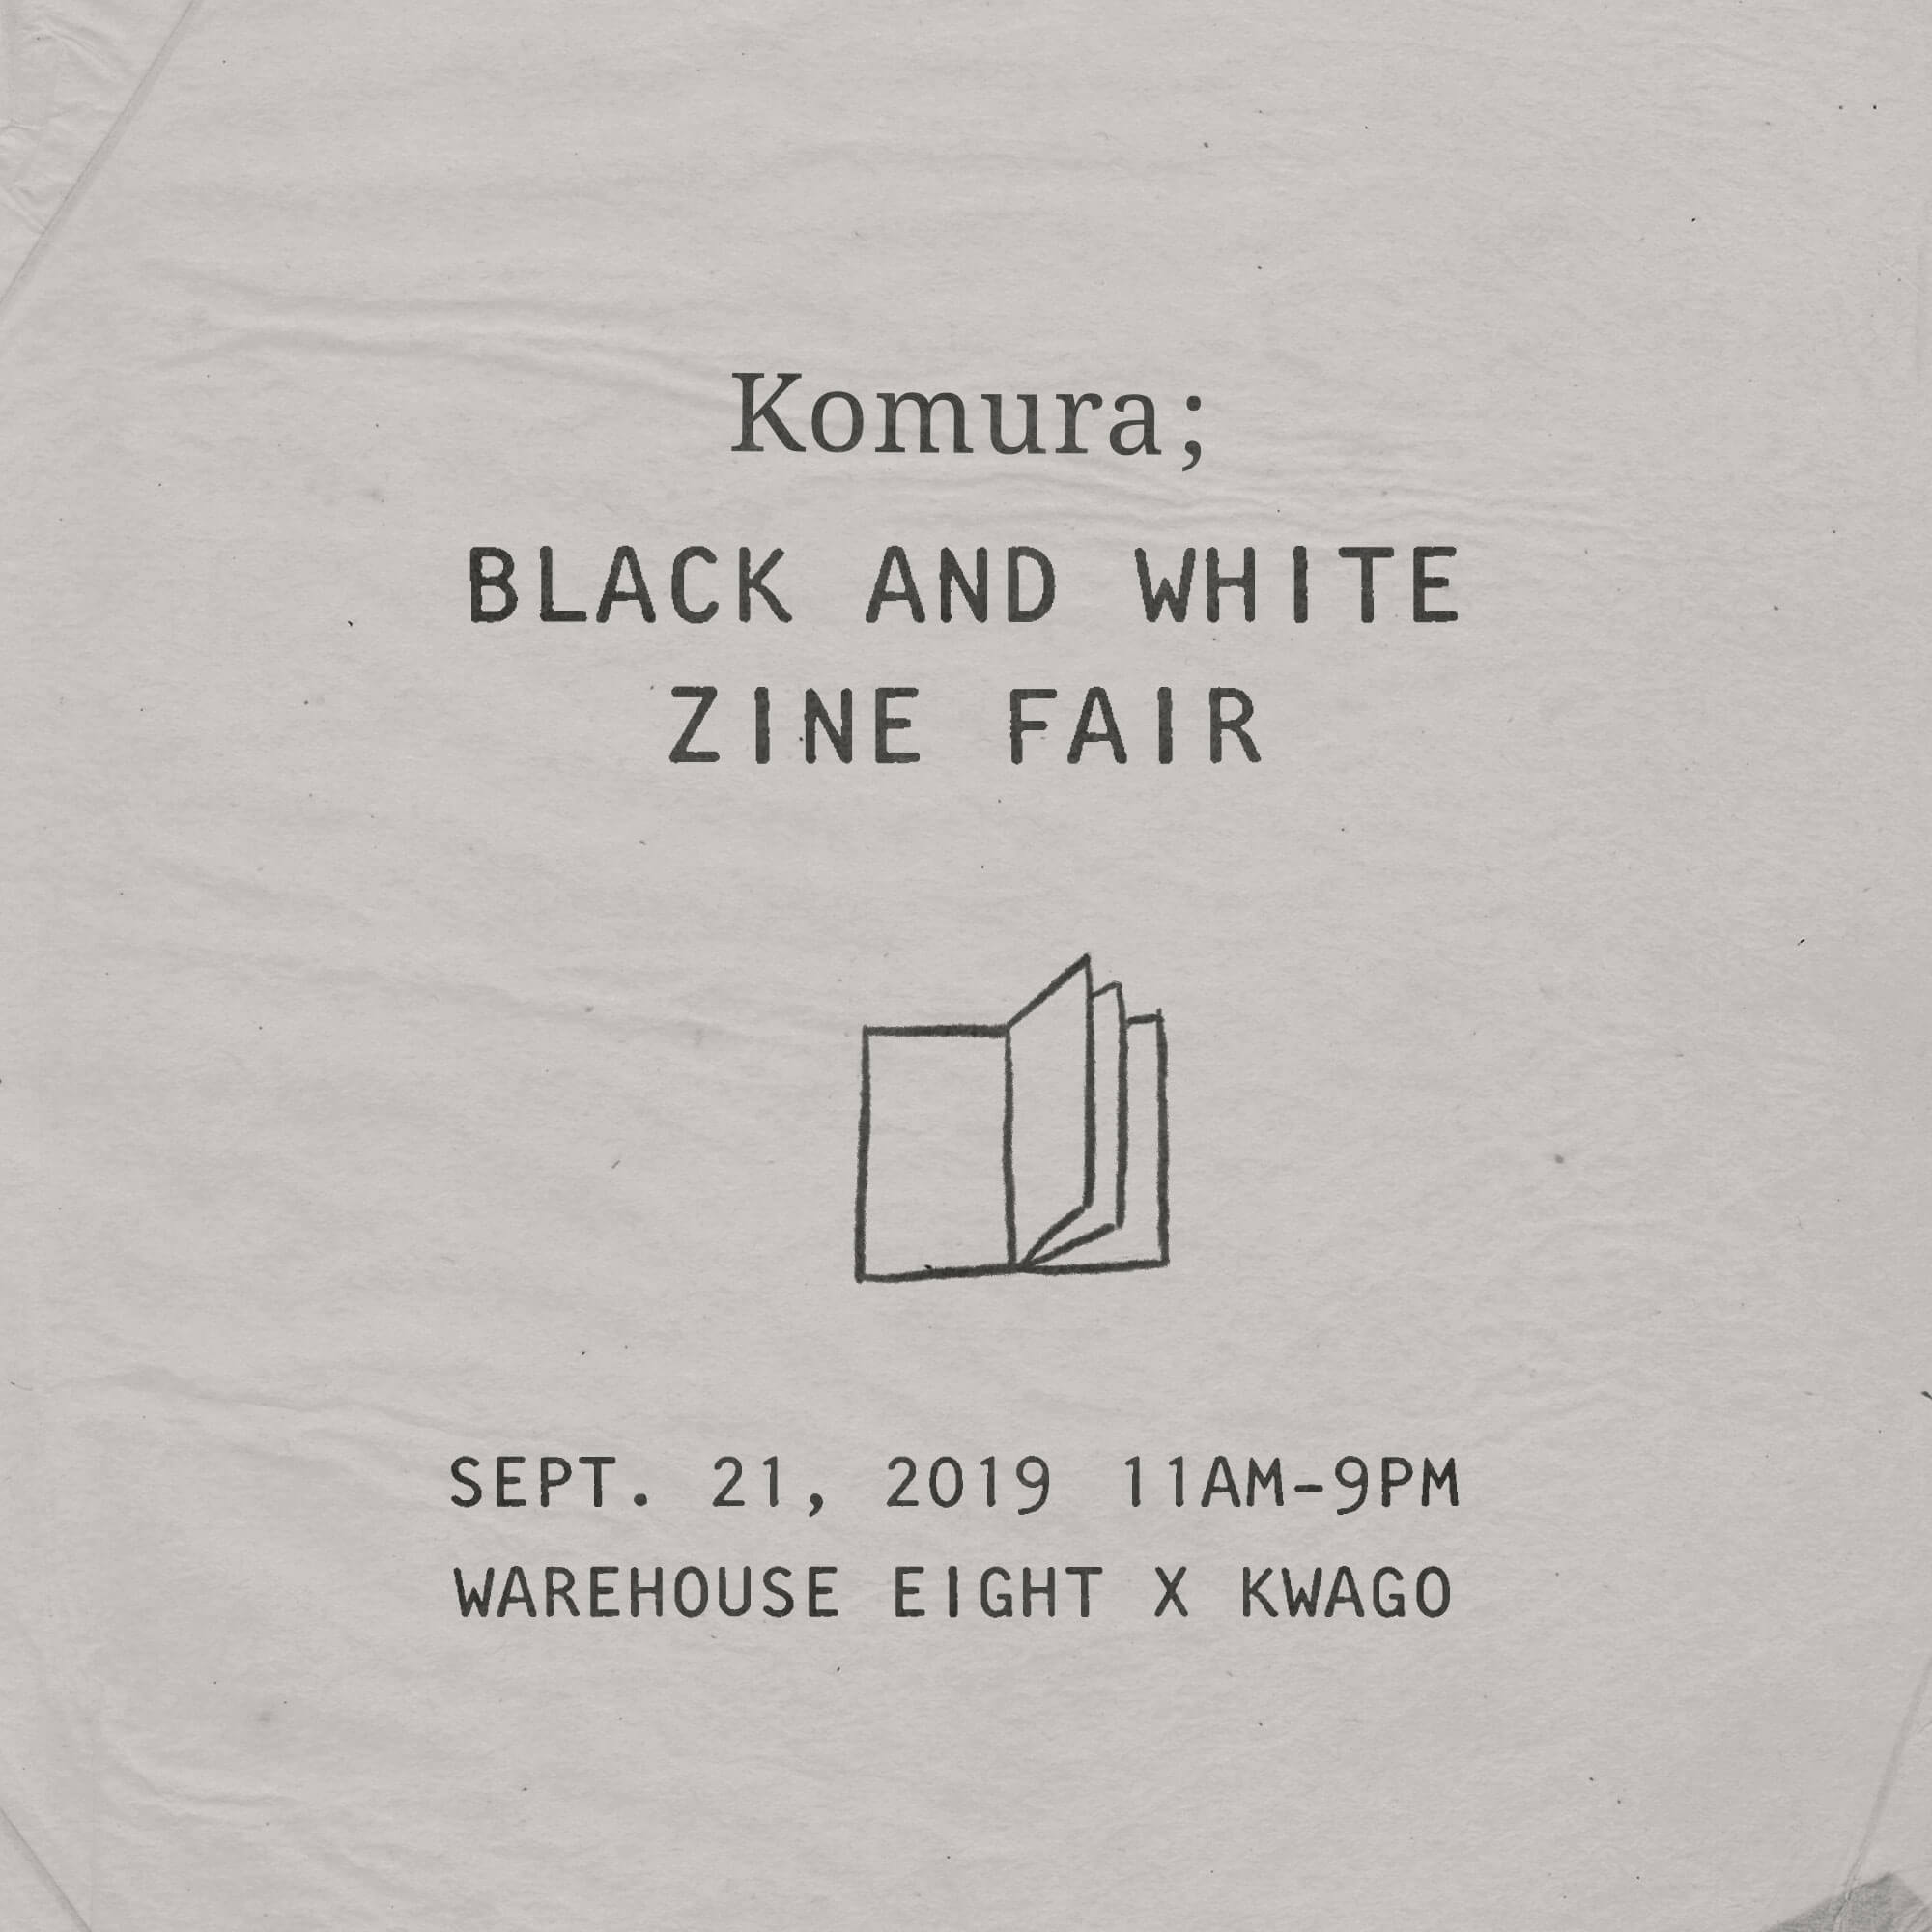 Komura; Black and White Zine fair on September 21